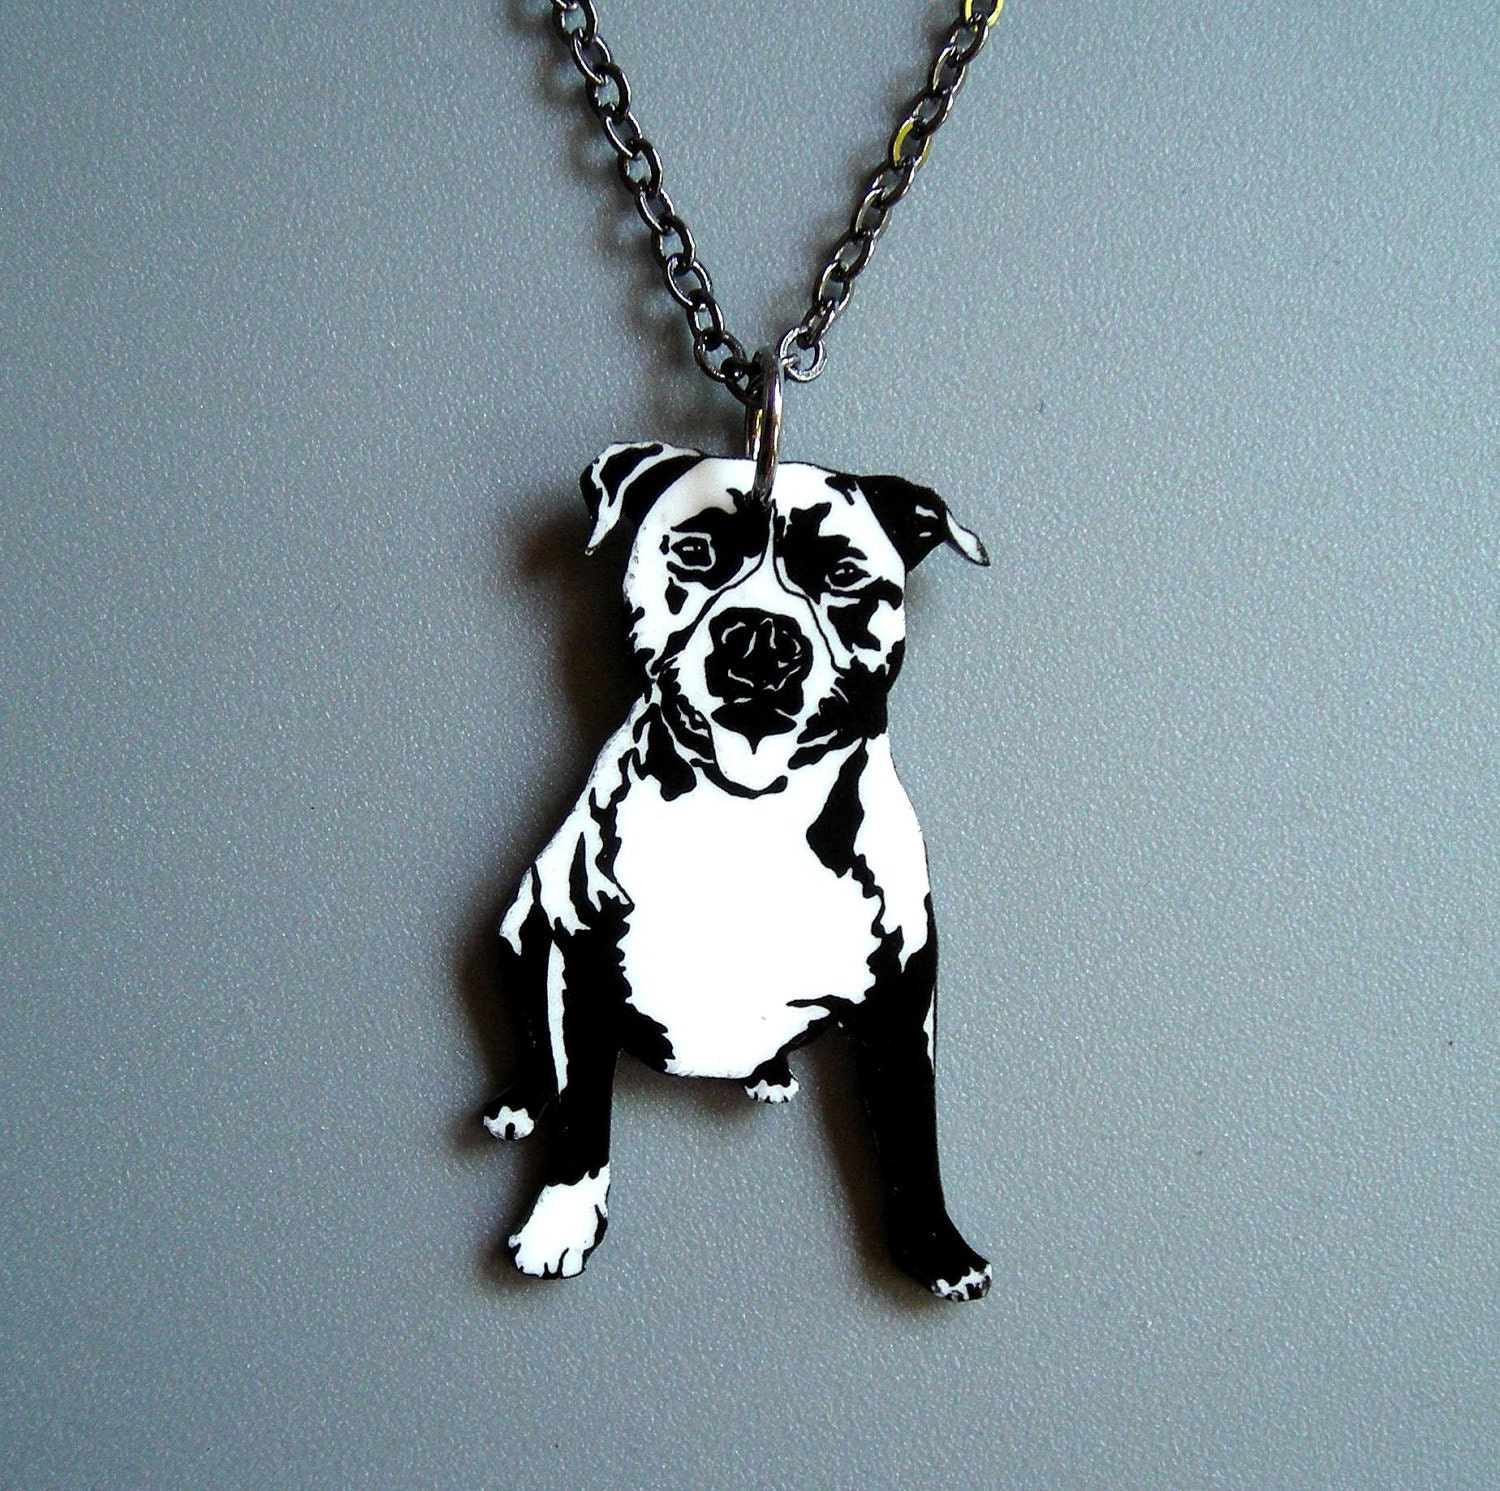 Smiling Pit Bull Necklace 5 dollars from by PrettyInInkJewelry